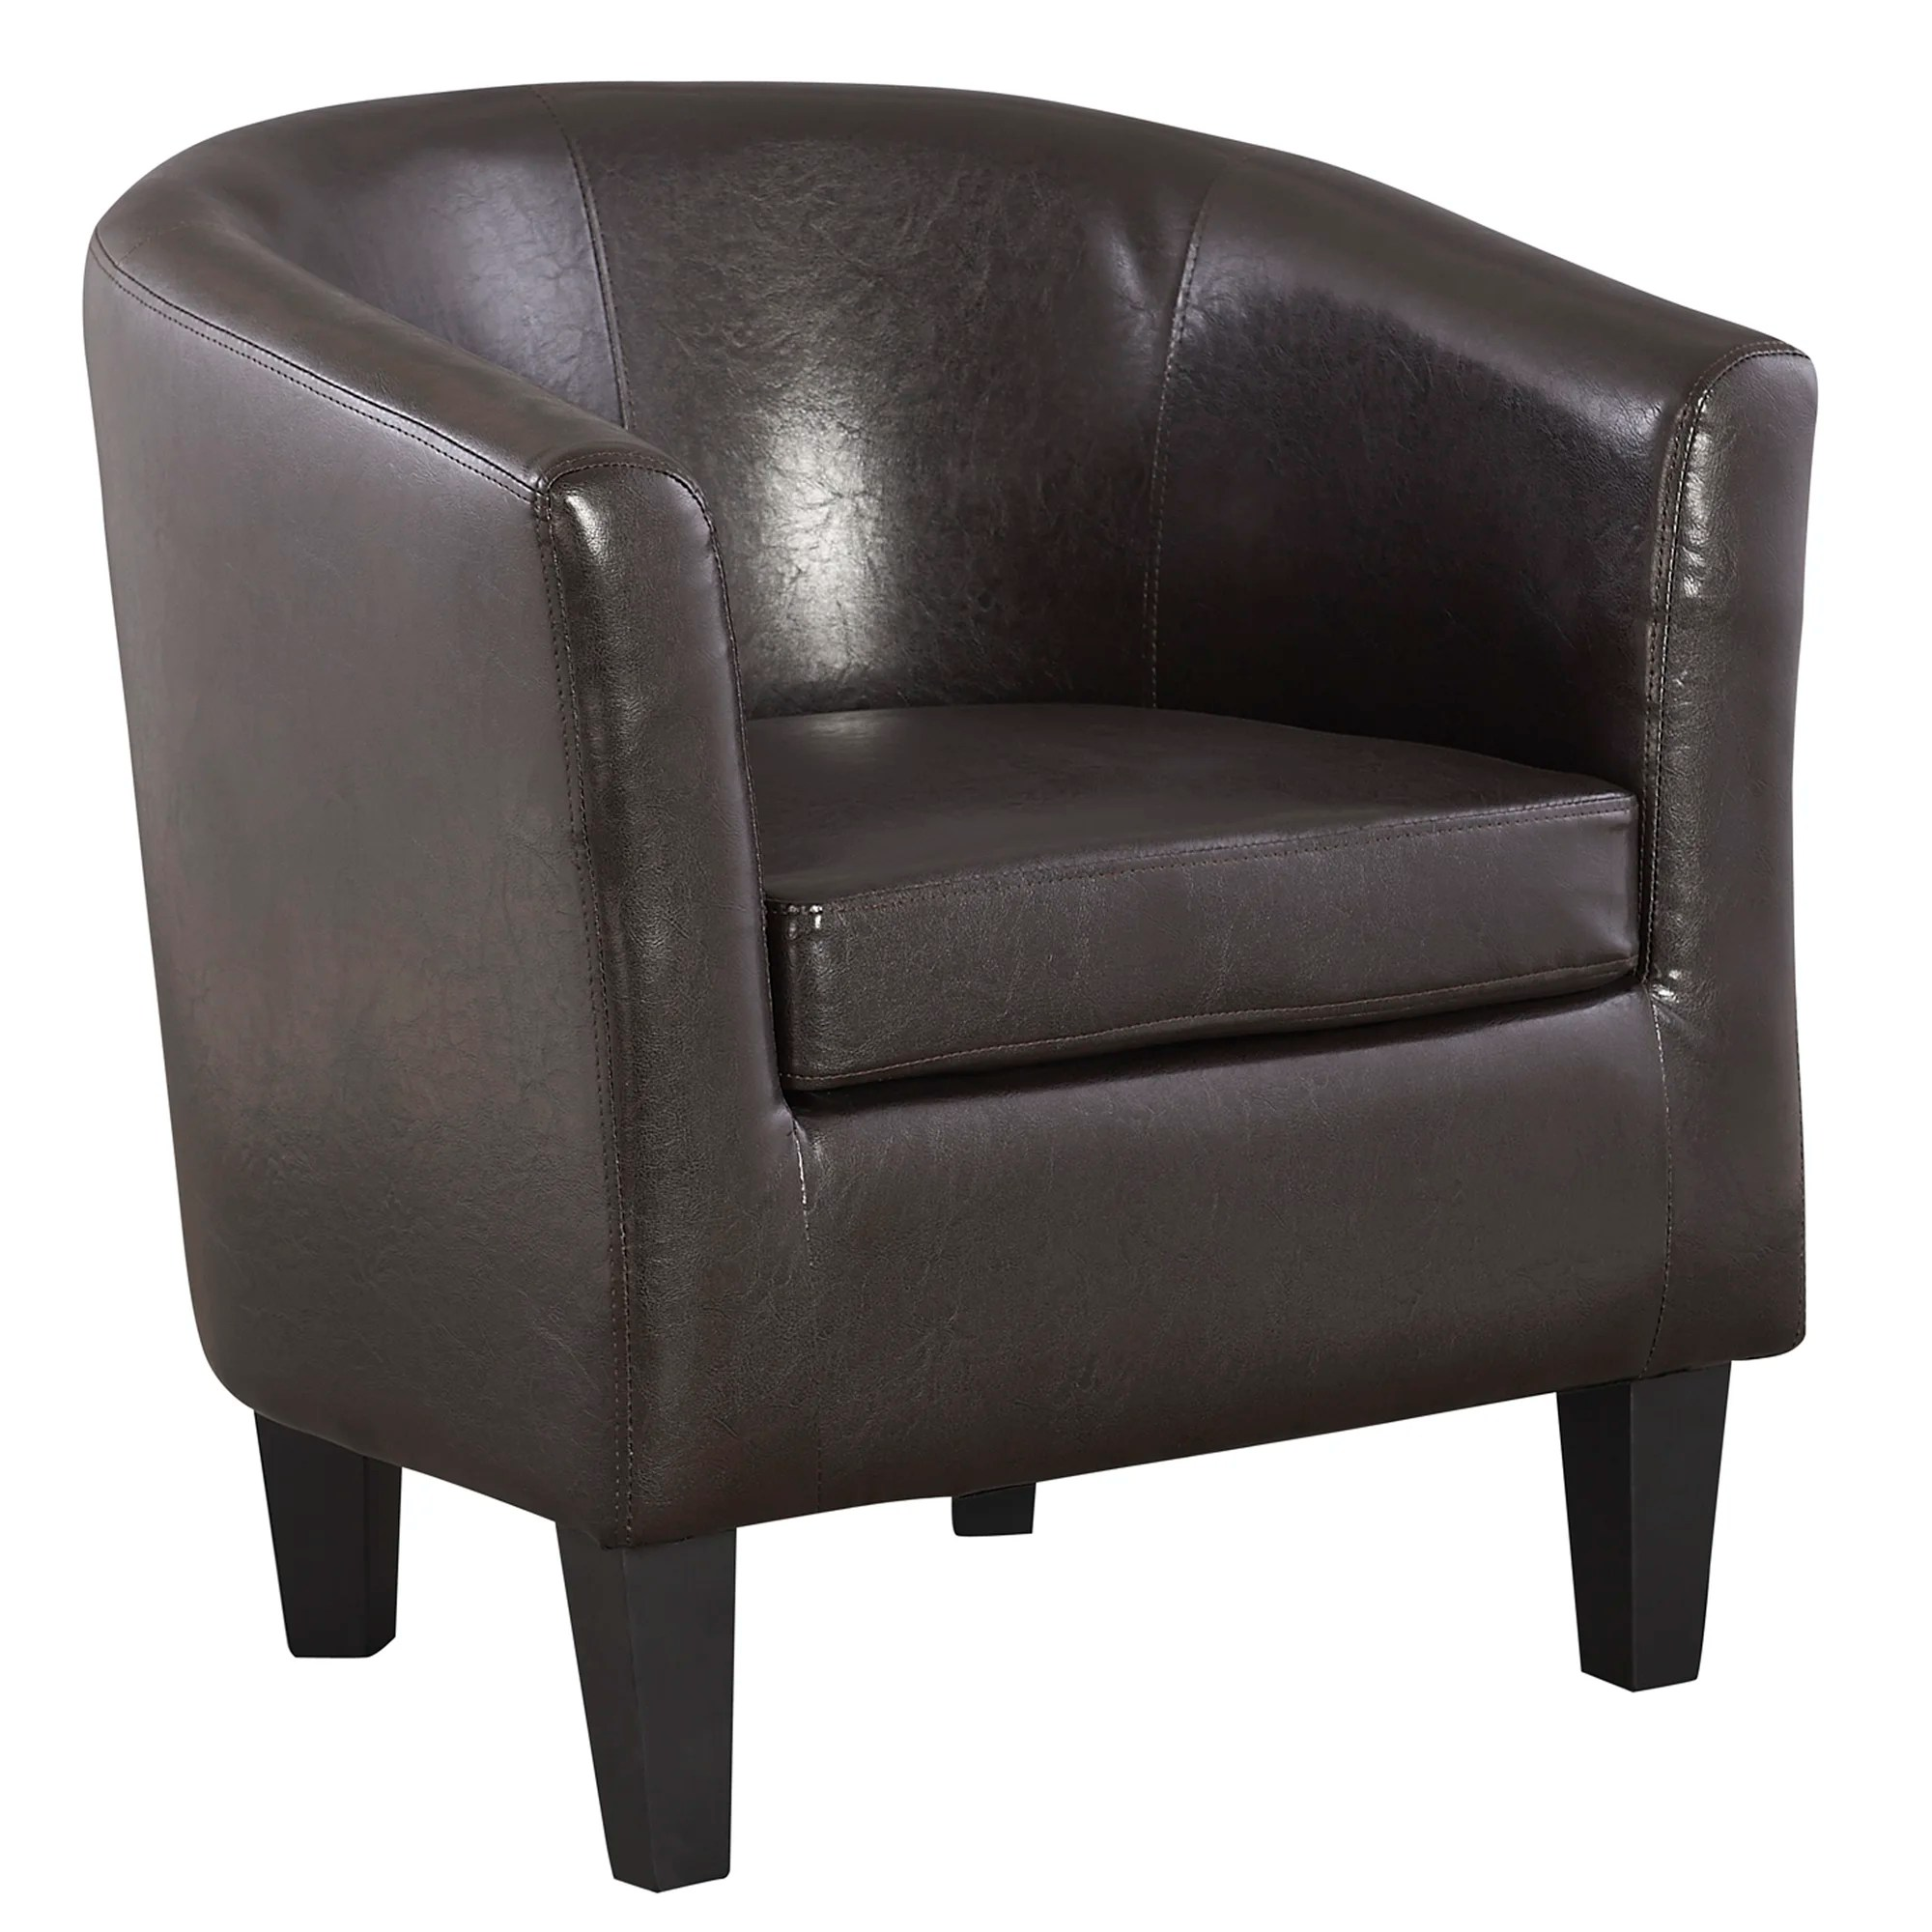 Black Barrel Chair Homestead Living Lateal Leather Barrel Chair Ebay